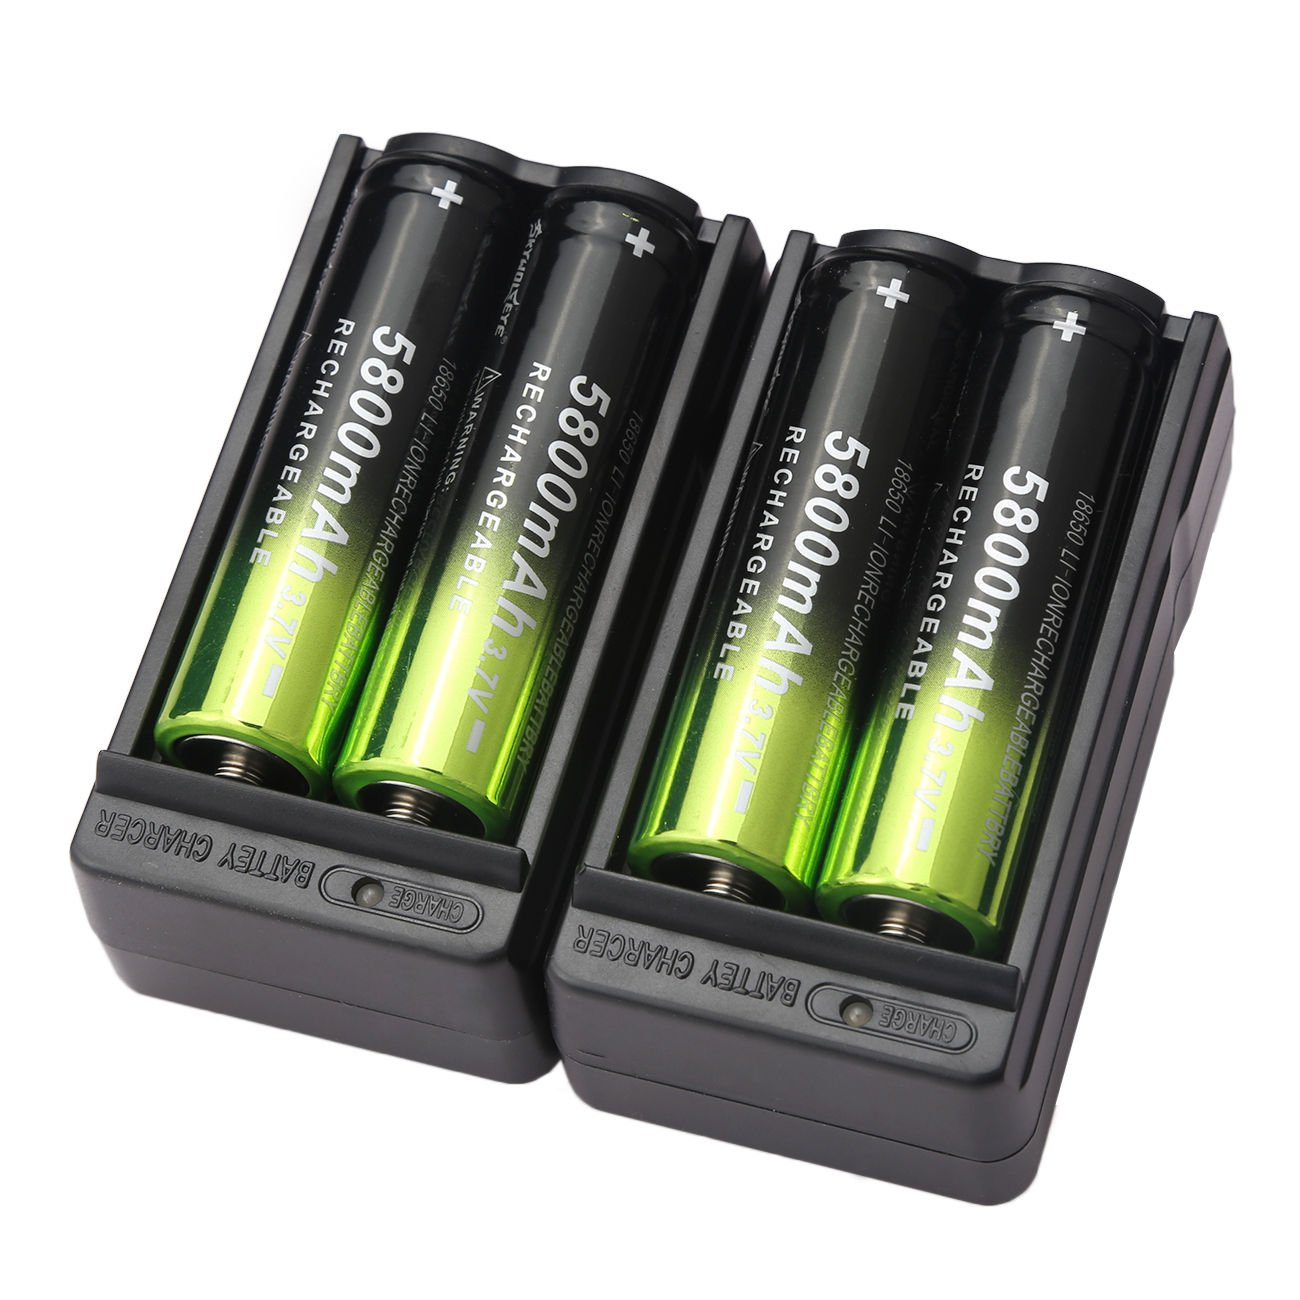 4 X 5800mAh 18650 Battery 3.7V Li-ion Rechargeable+ 2X Dual Charger for Flashlight Headlamp by Skywolfeye